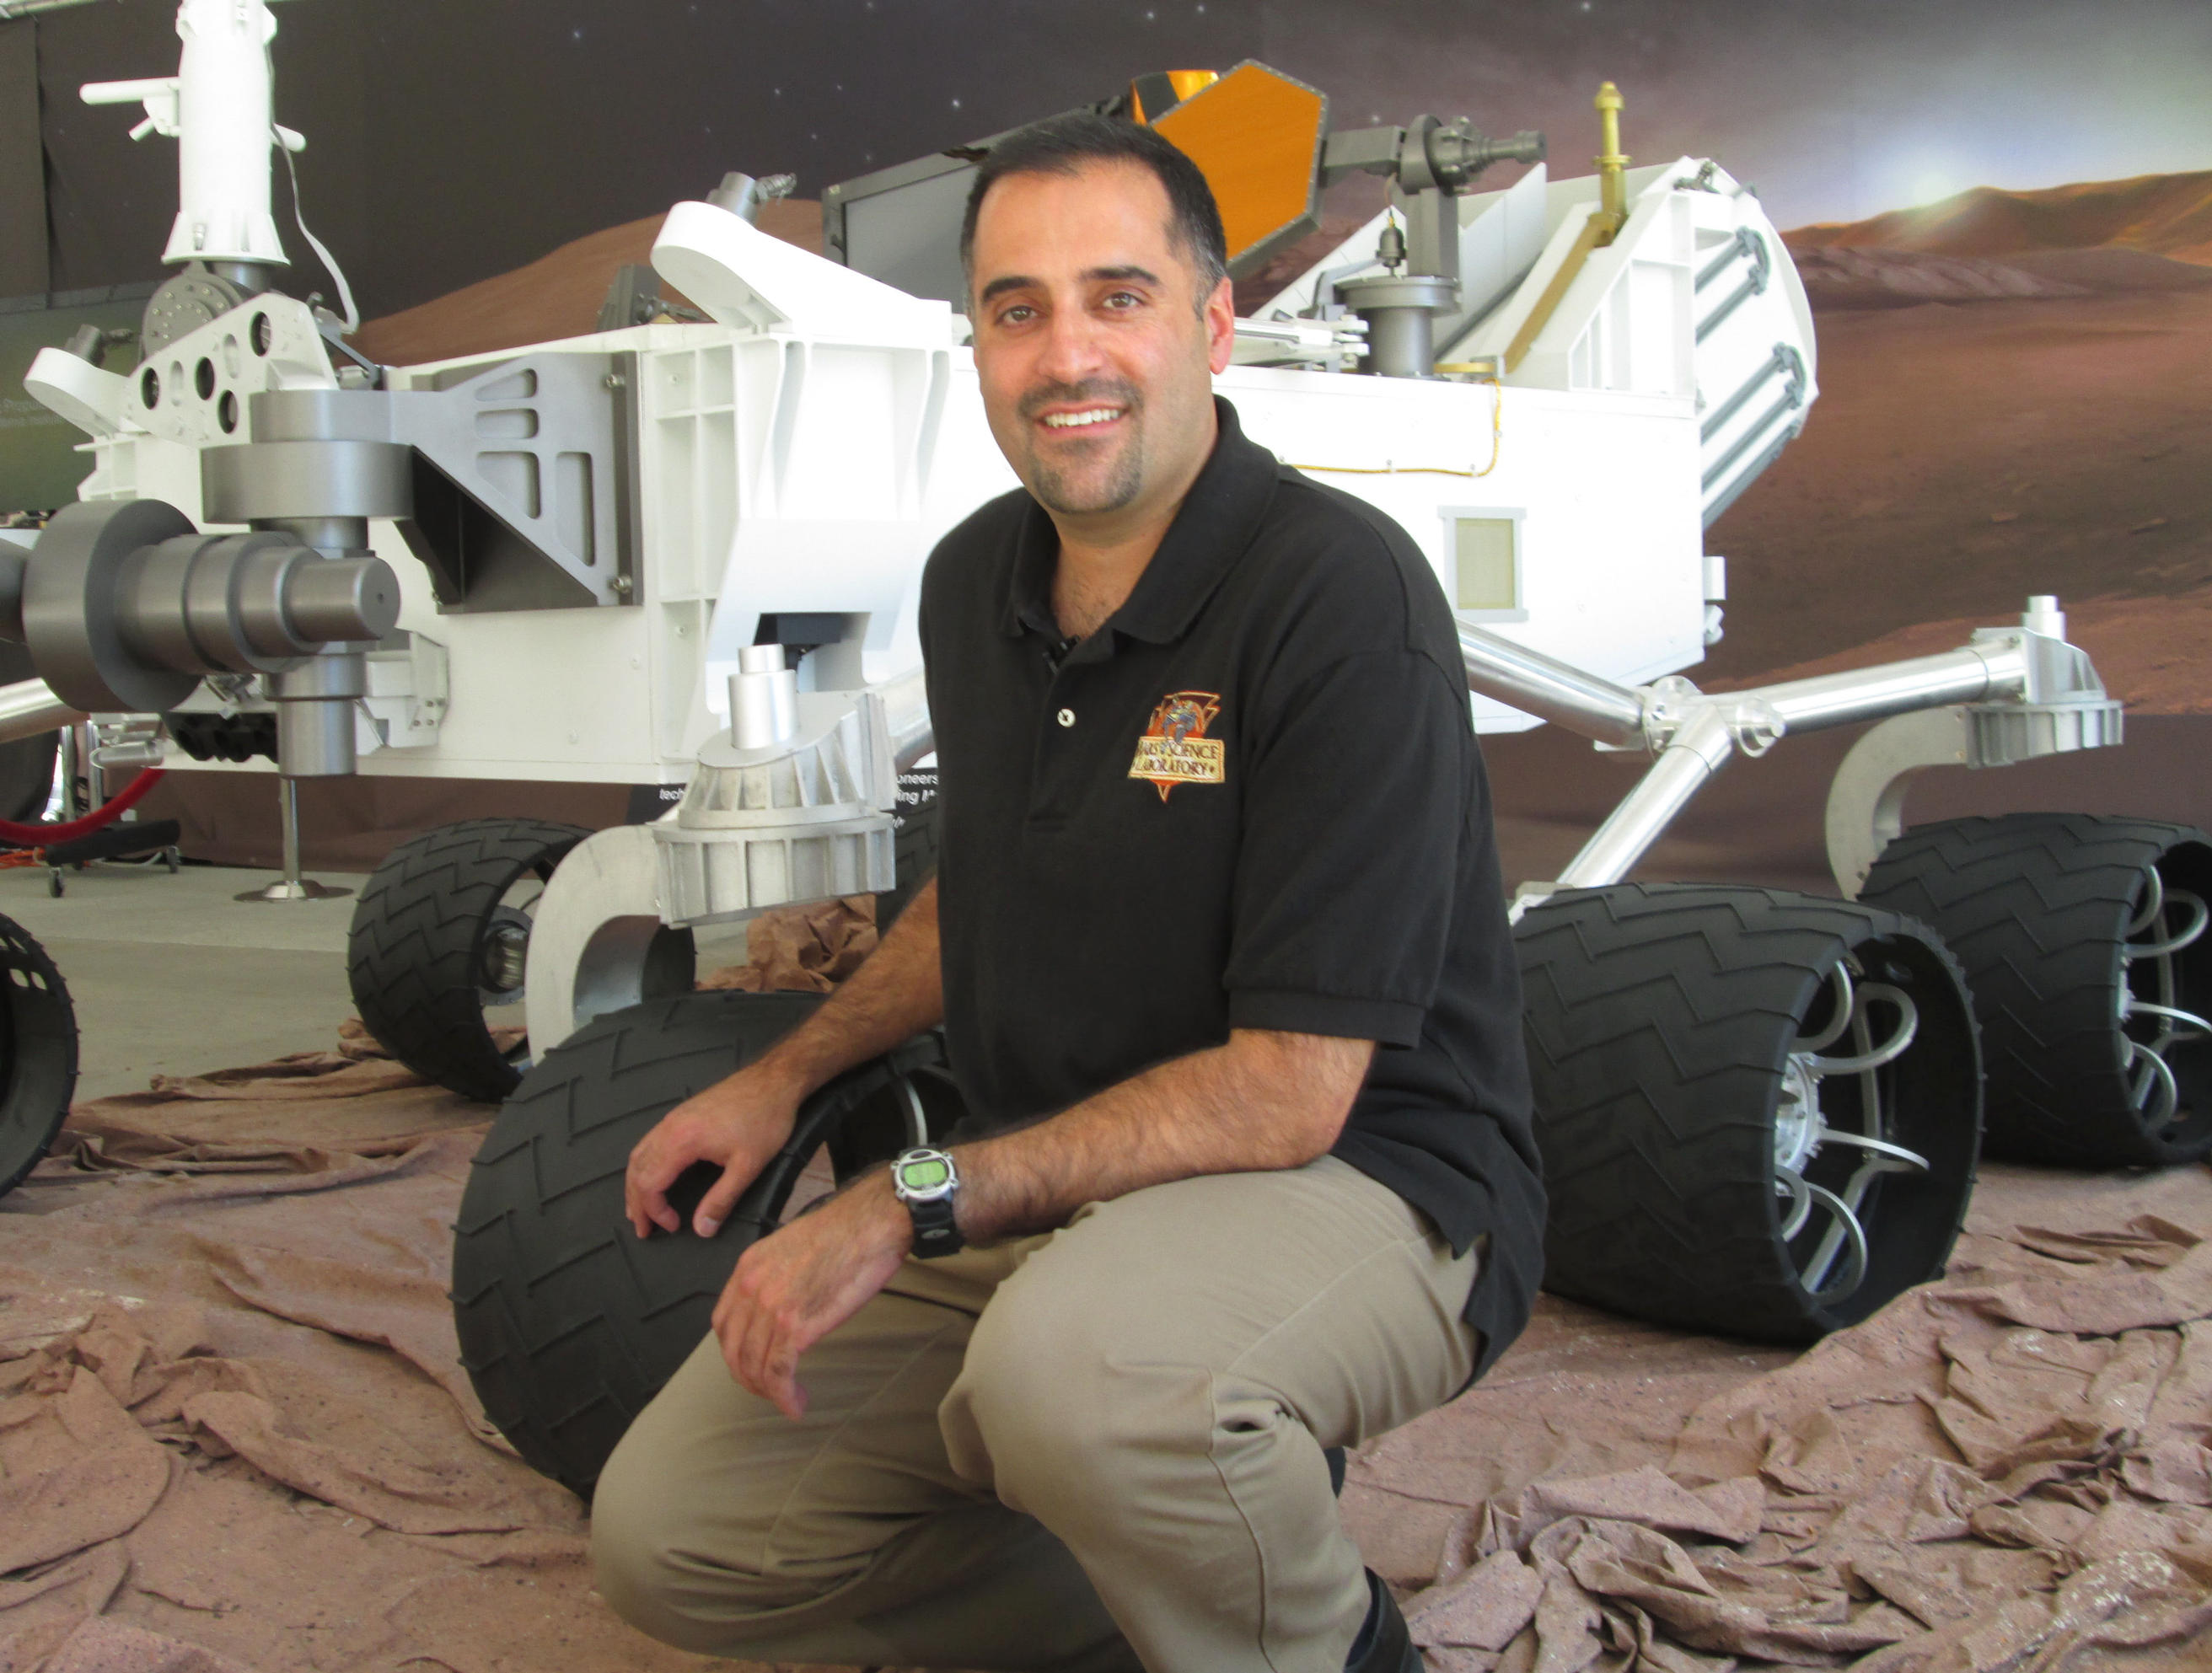 Ashwin Vasavada of NASA's Jet Propulsion Laboratory, Pasadena, California, became the project scientist for NASA's Mars Science Laboratory Project in January 2015.